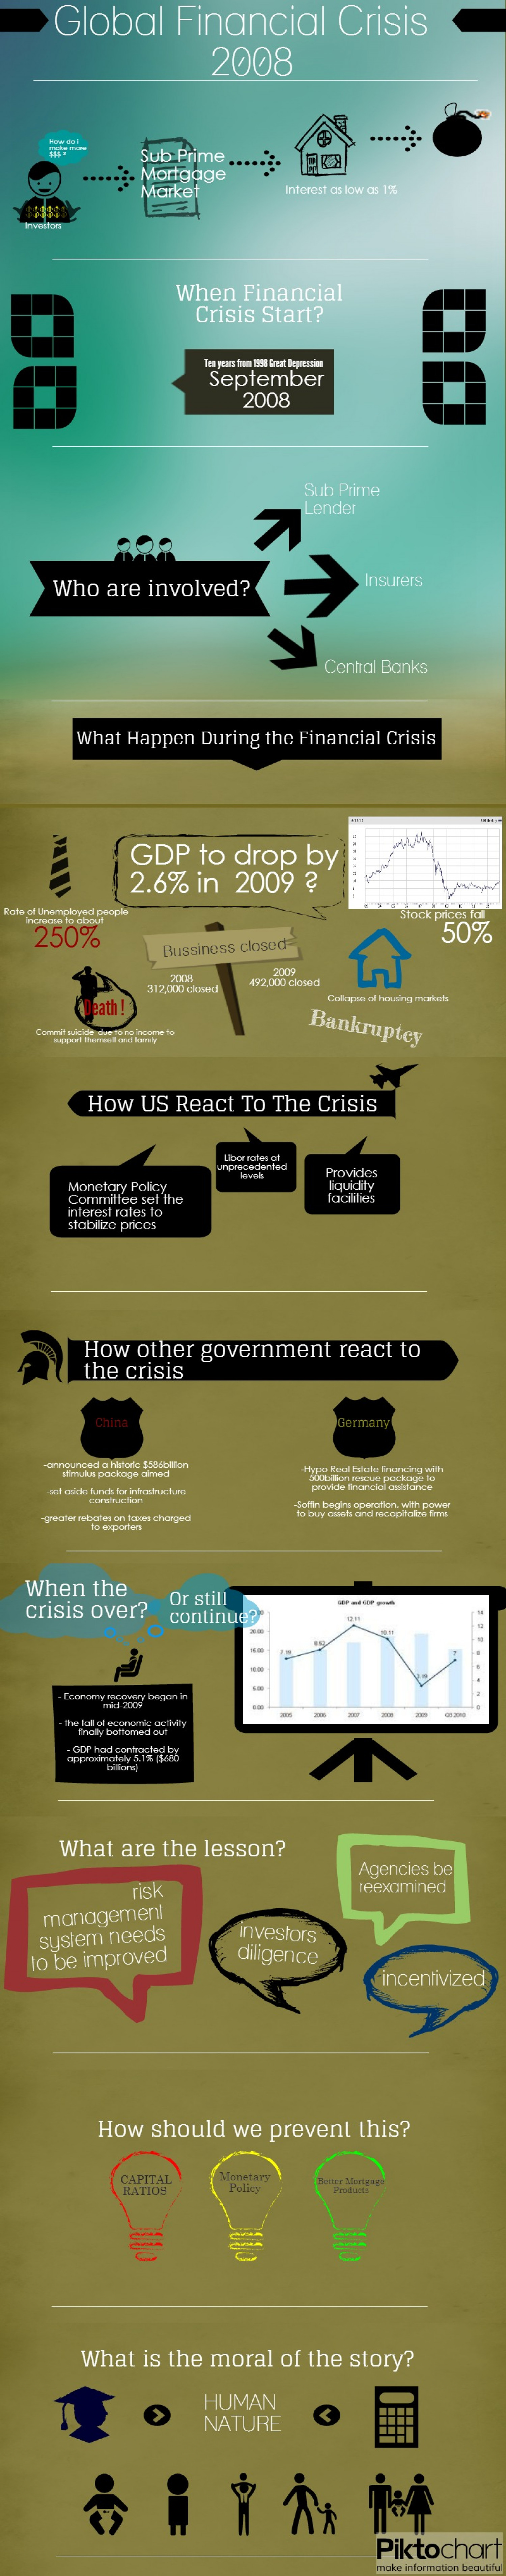 Global Financial Crisis 2008 Infographic